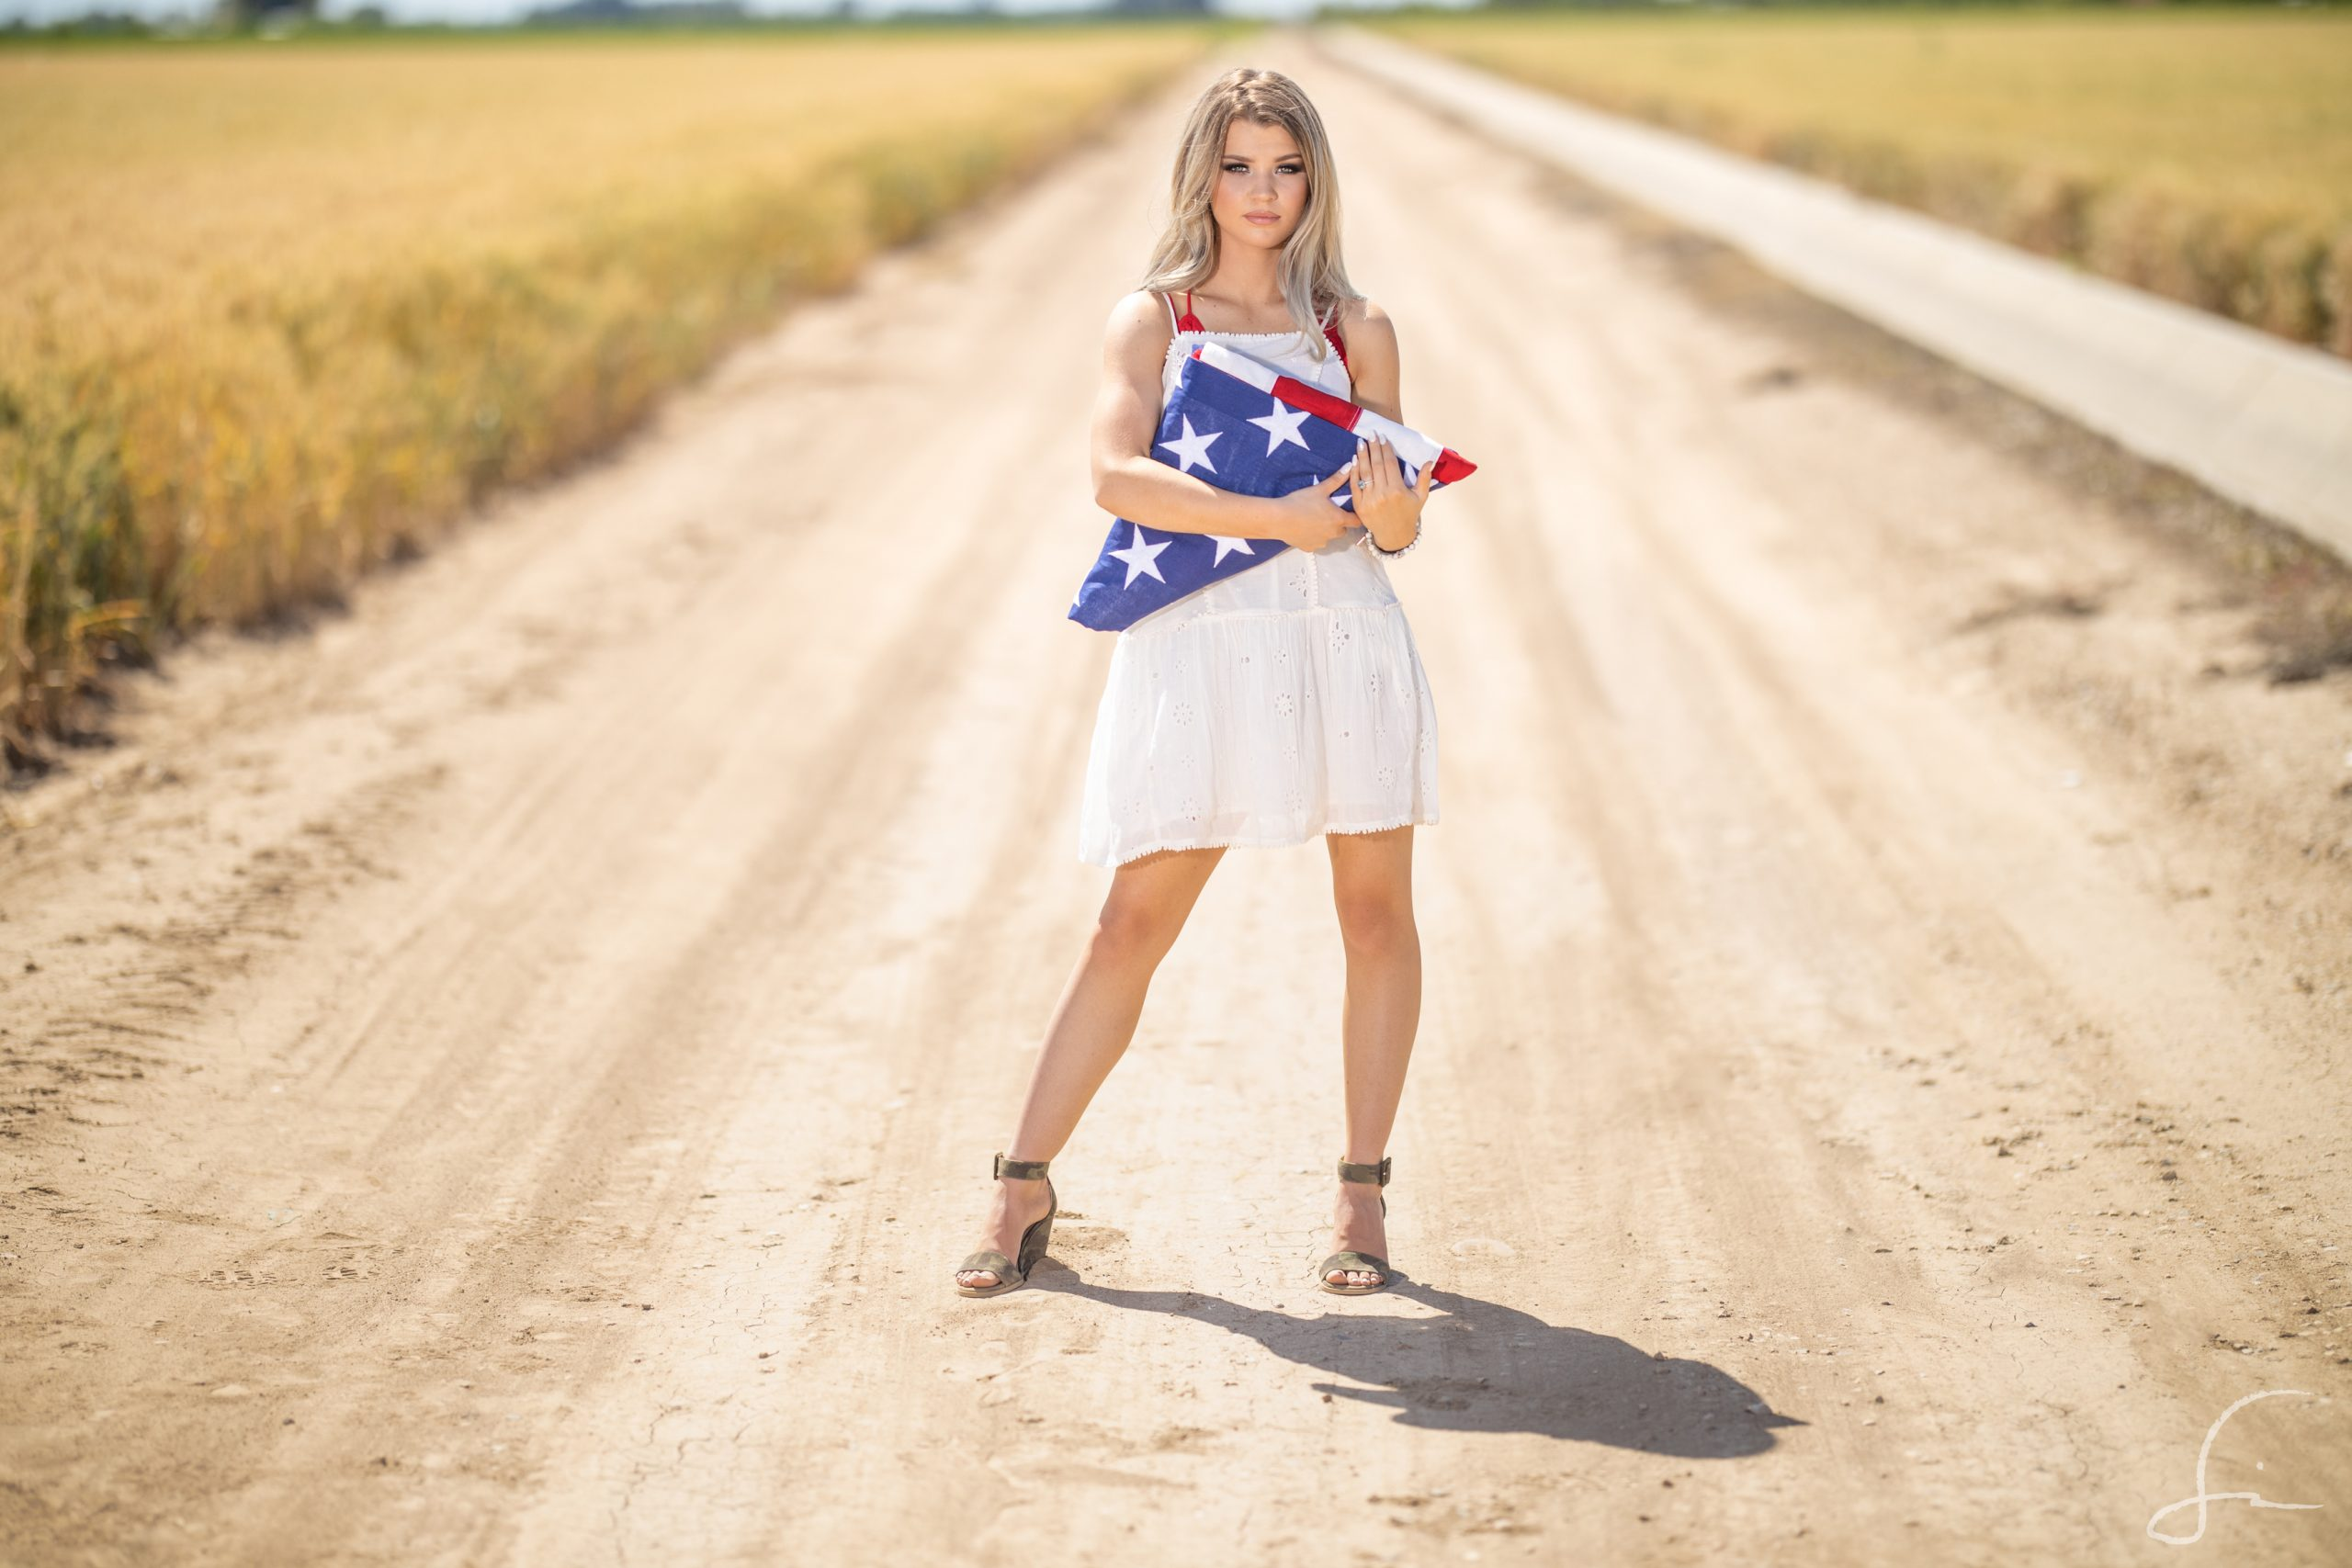 Young woman in a white dress holding an American Flag in a wheat field